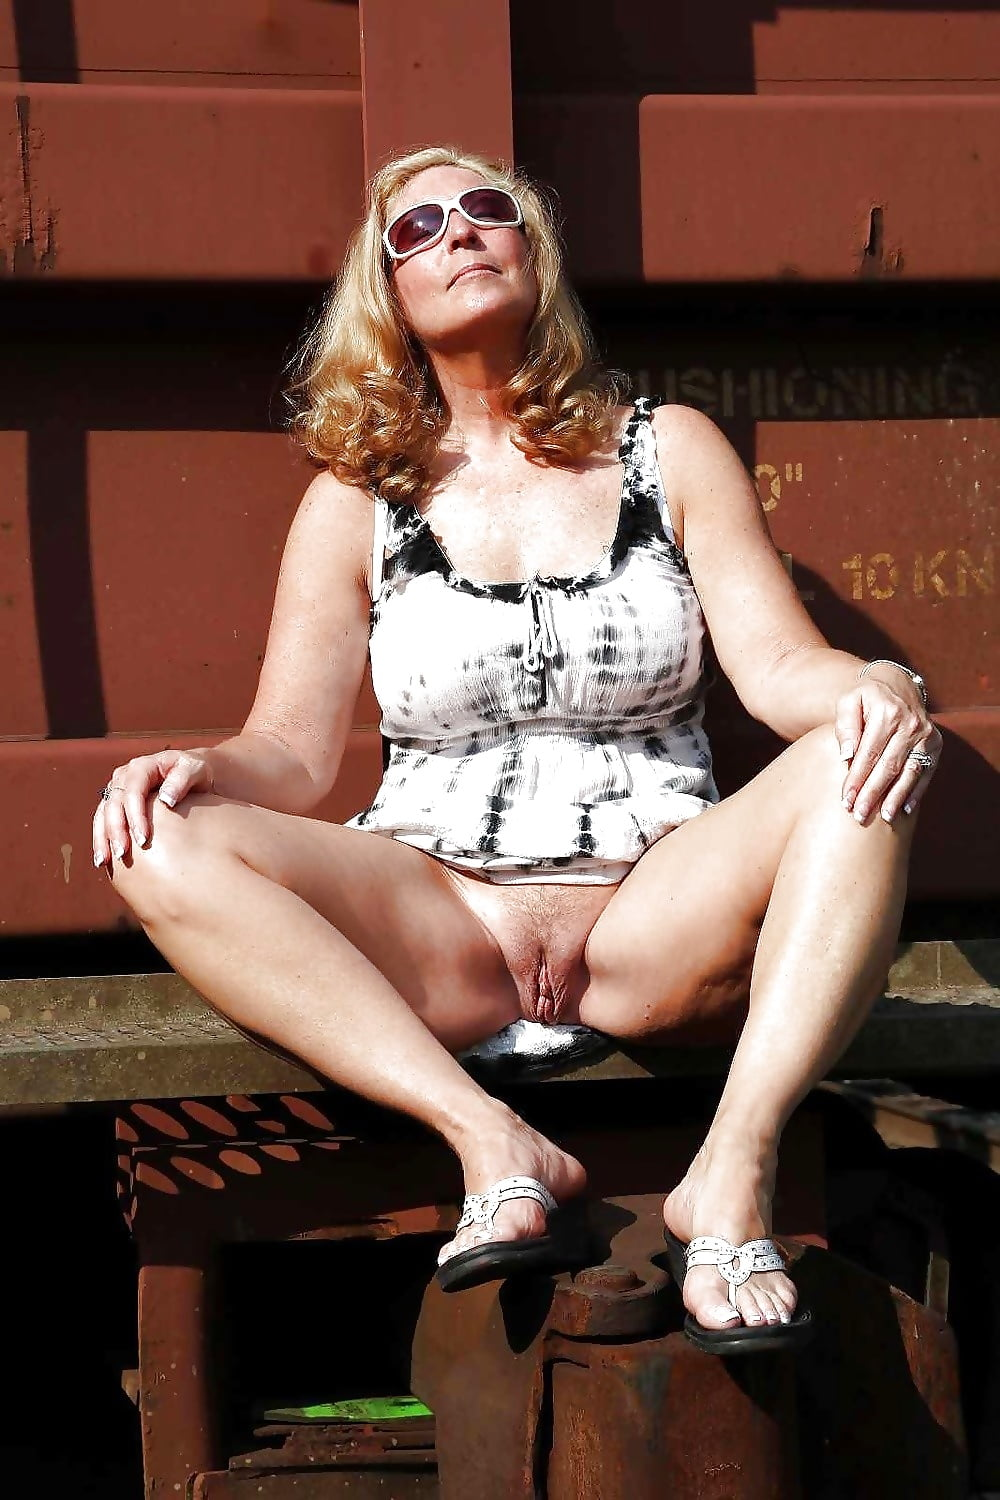 Mature Woman Pussy Upskirt On All Fours Outdoors Nude Girls Pictures